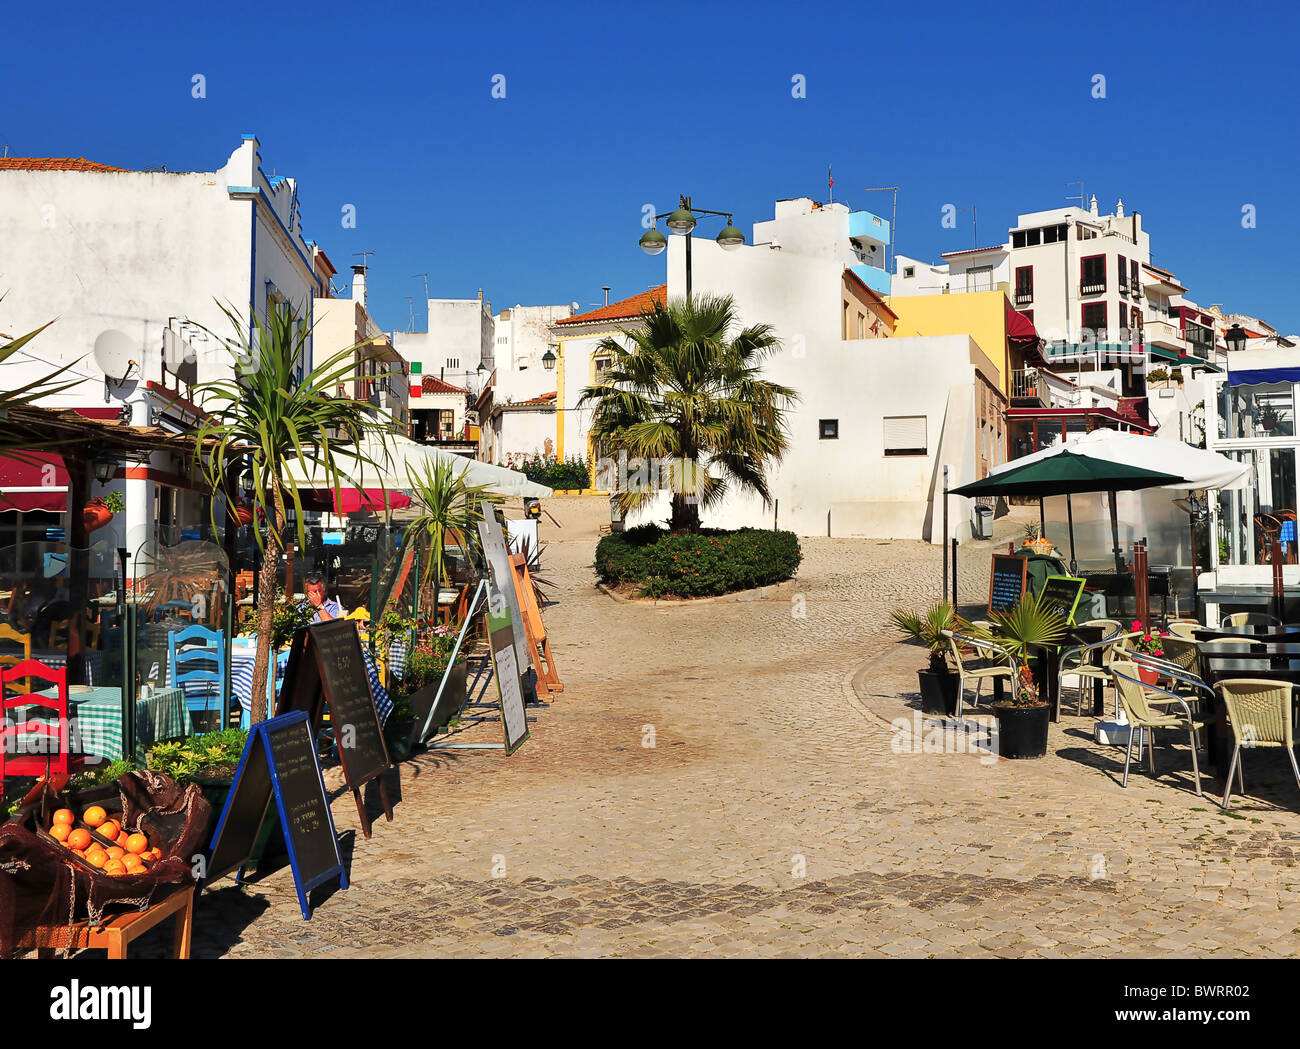 the small village and backstreets of alvor algarve. Black Bedroom Furniture Sets. Home Design Ideas